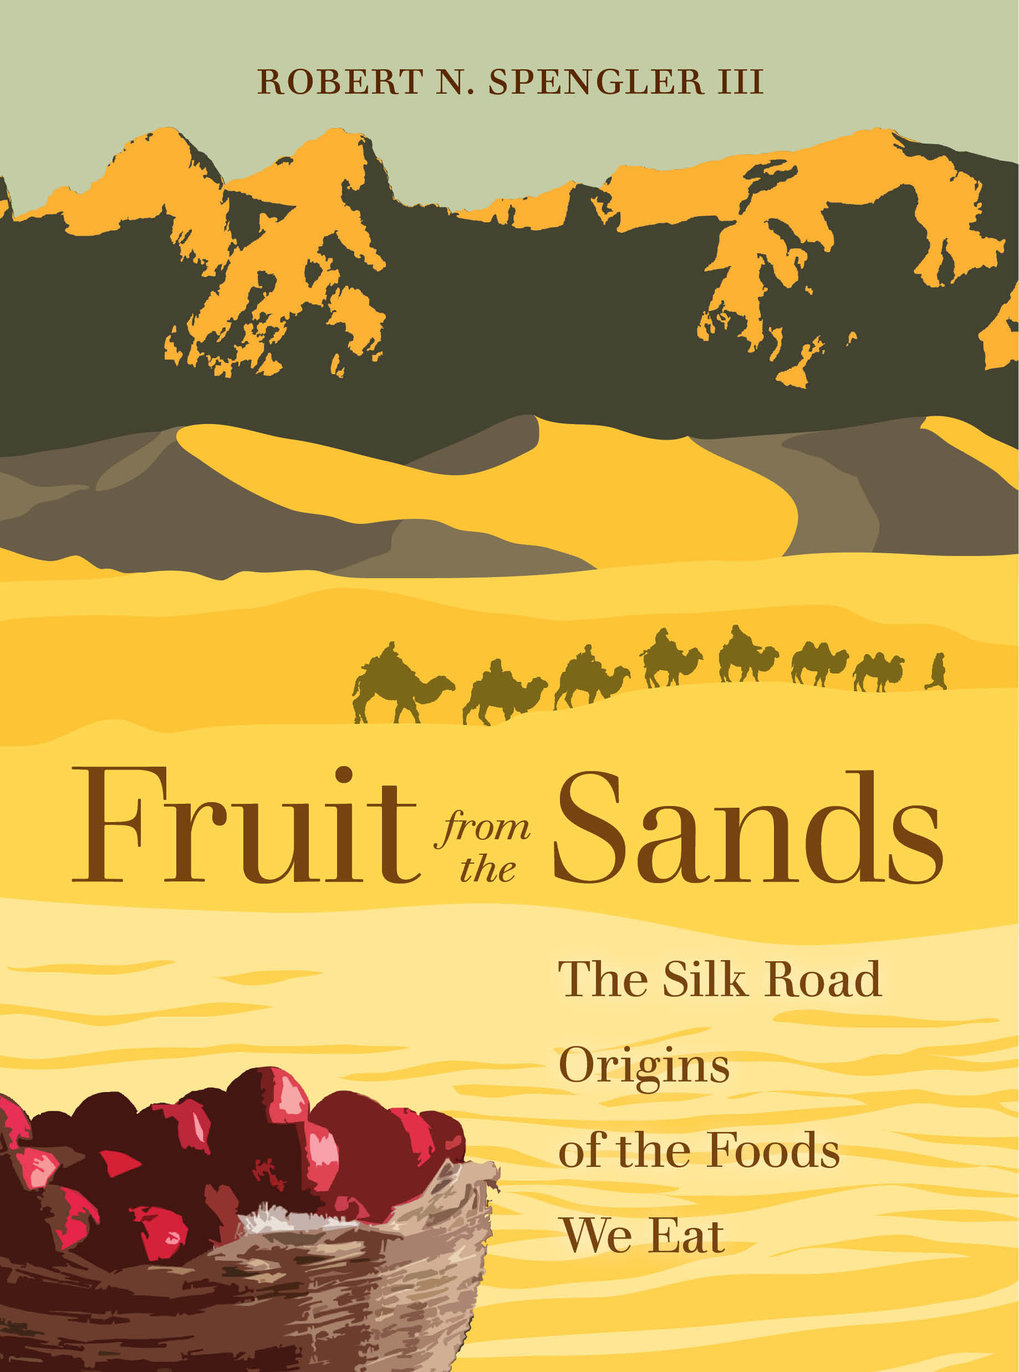 Robert N. Spengler III, Fruit from the Sands: The Silk Road origins of the foods we eat, University of California Press (published with, and available online at, the University of California Press and Amazon.com).